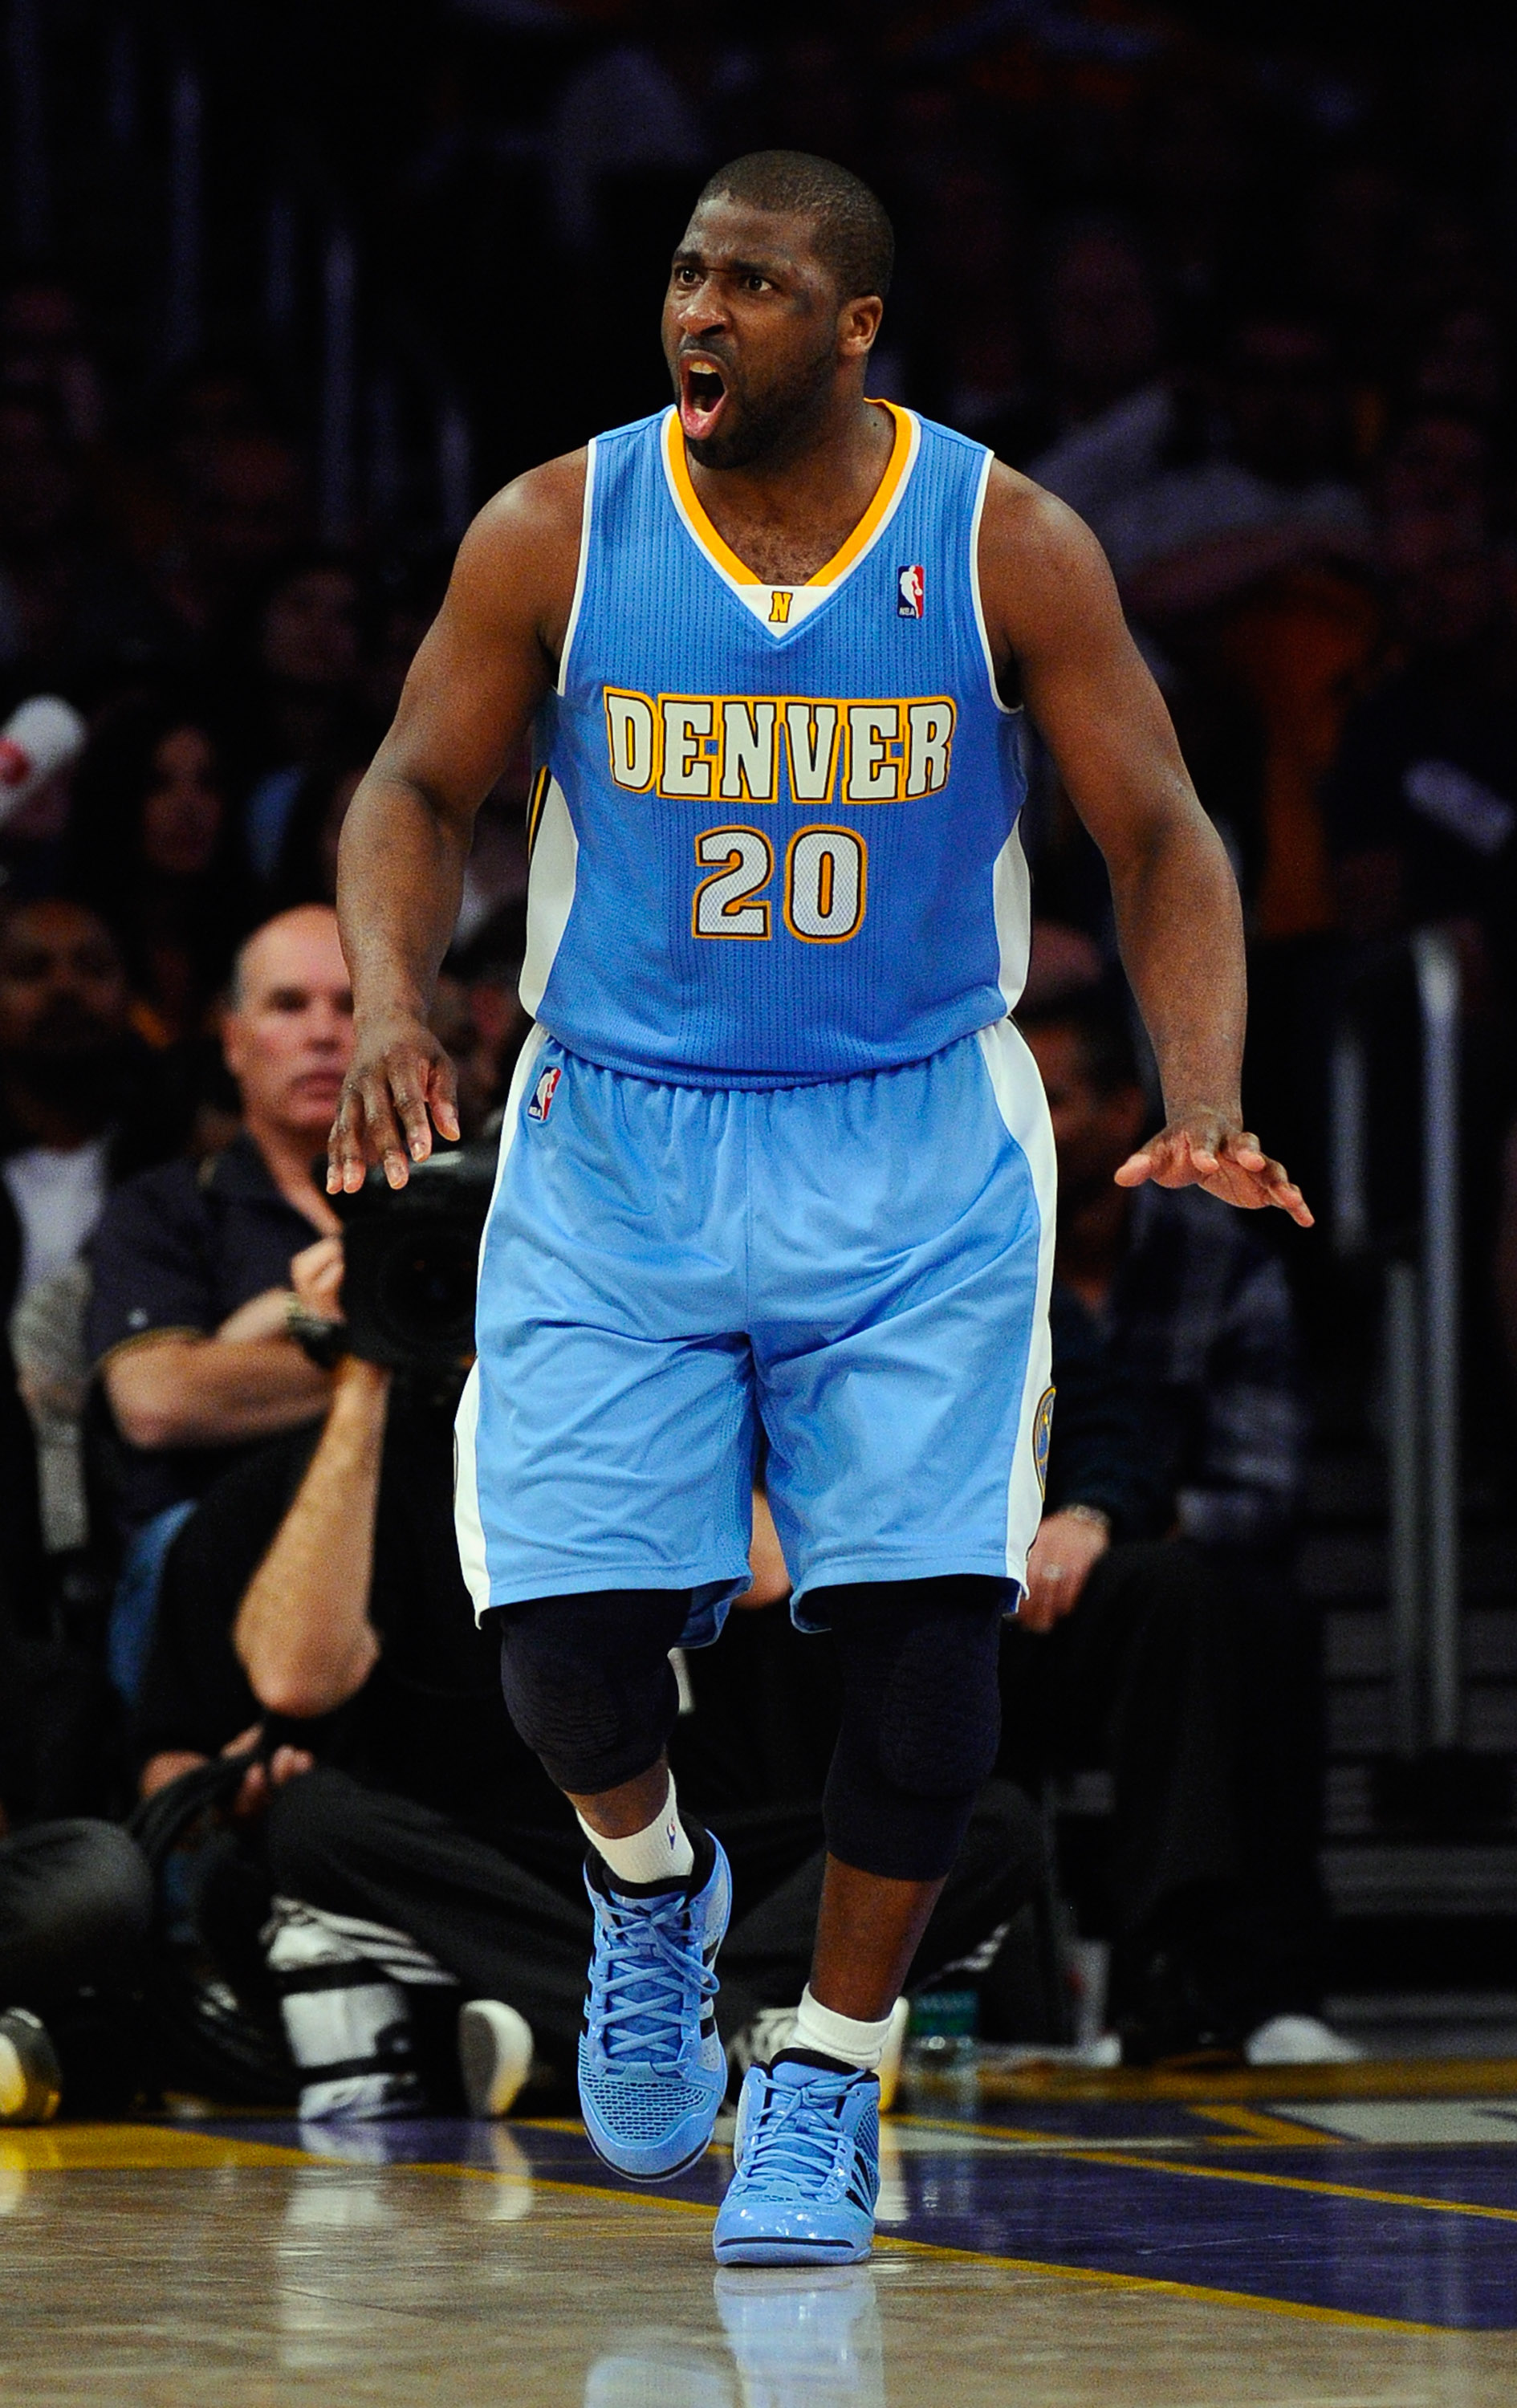 LOS ANGELES, CA - APRIL 03:  Raymond Felton #20 of the Denver Nuggets reacts during the game against the Los Angeles Lakers at Staples Center on April 3, 2011 in Los Angeles, California. NOTE TO USER: User expressly acknowledges and agrees that, by downlo